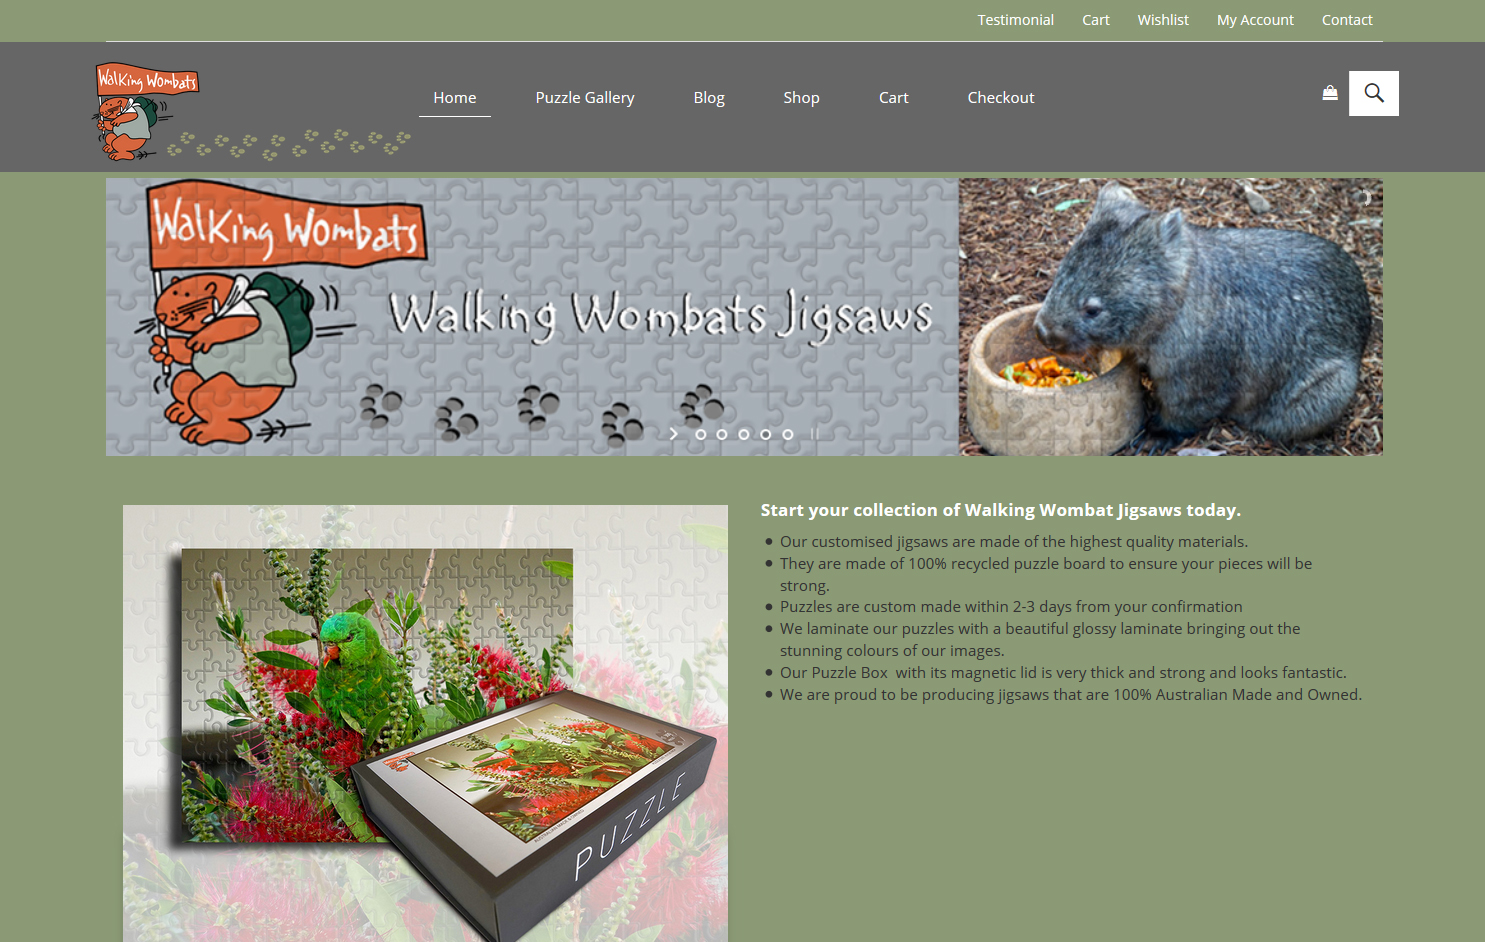 Tara Whitie latest website design for Walking Wombats Jigsaws